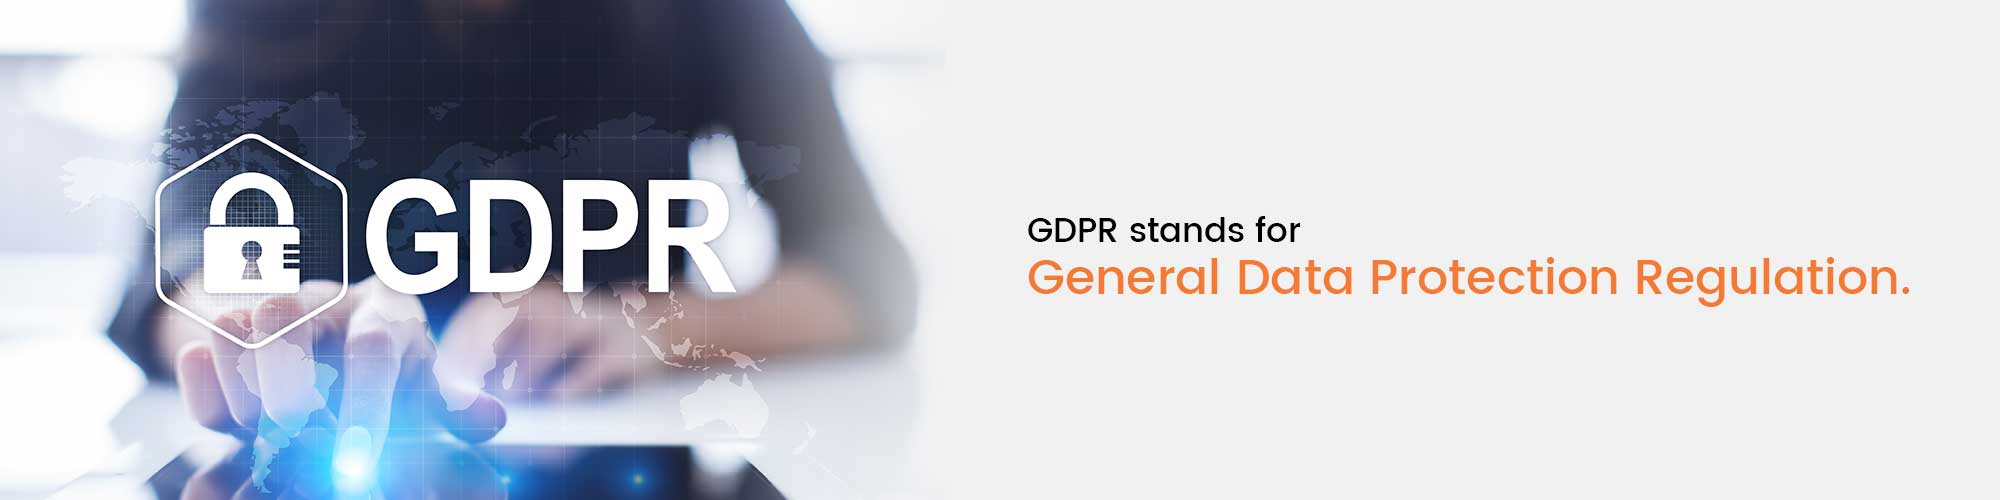 GDPR stards for General Data Protection Regulation